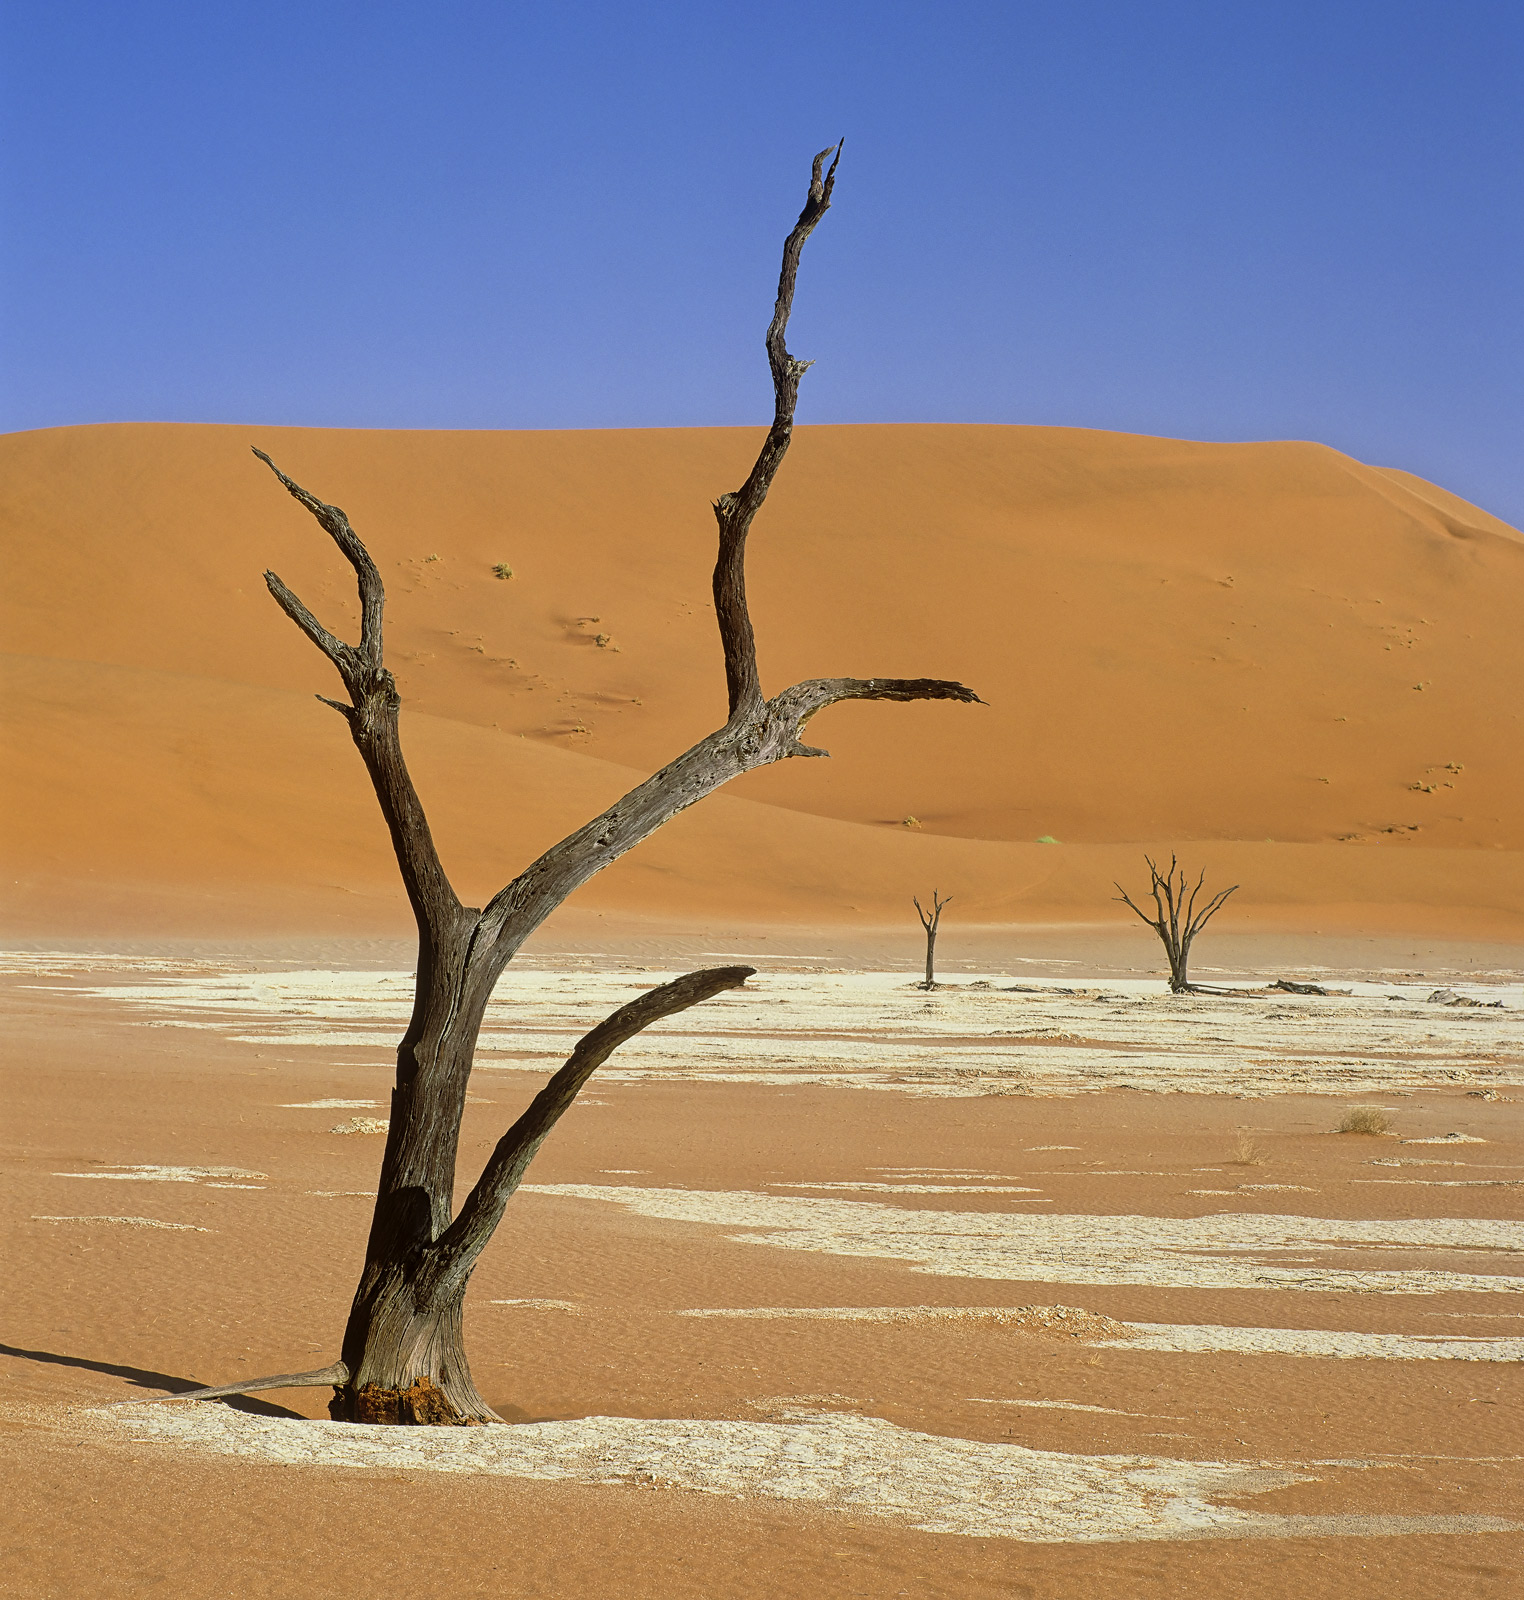 Long since deceased Camel thorn trees sprout from the orange desert pans ringed by ferrous dunes in one of the most bizarre landscapes...